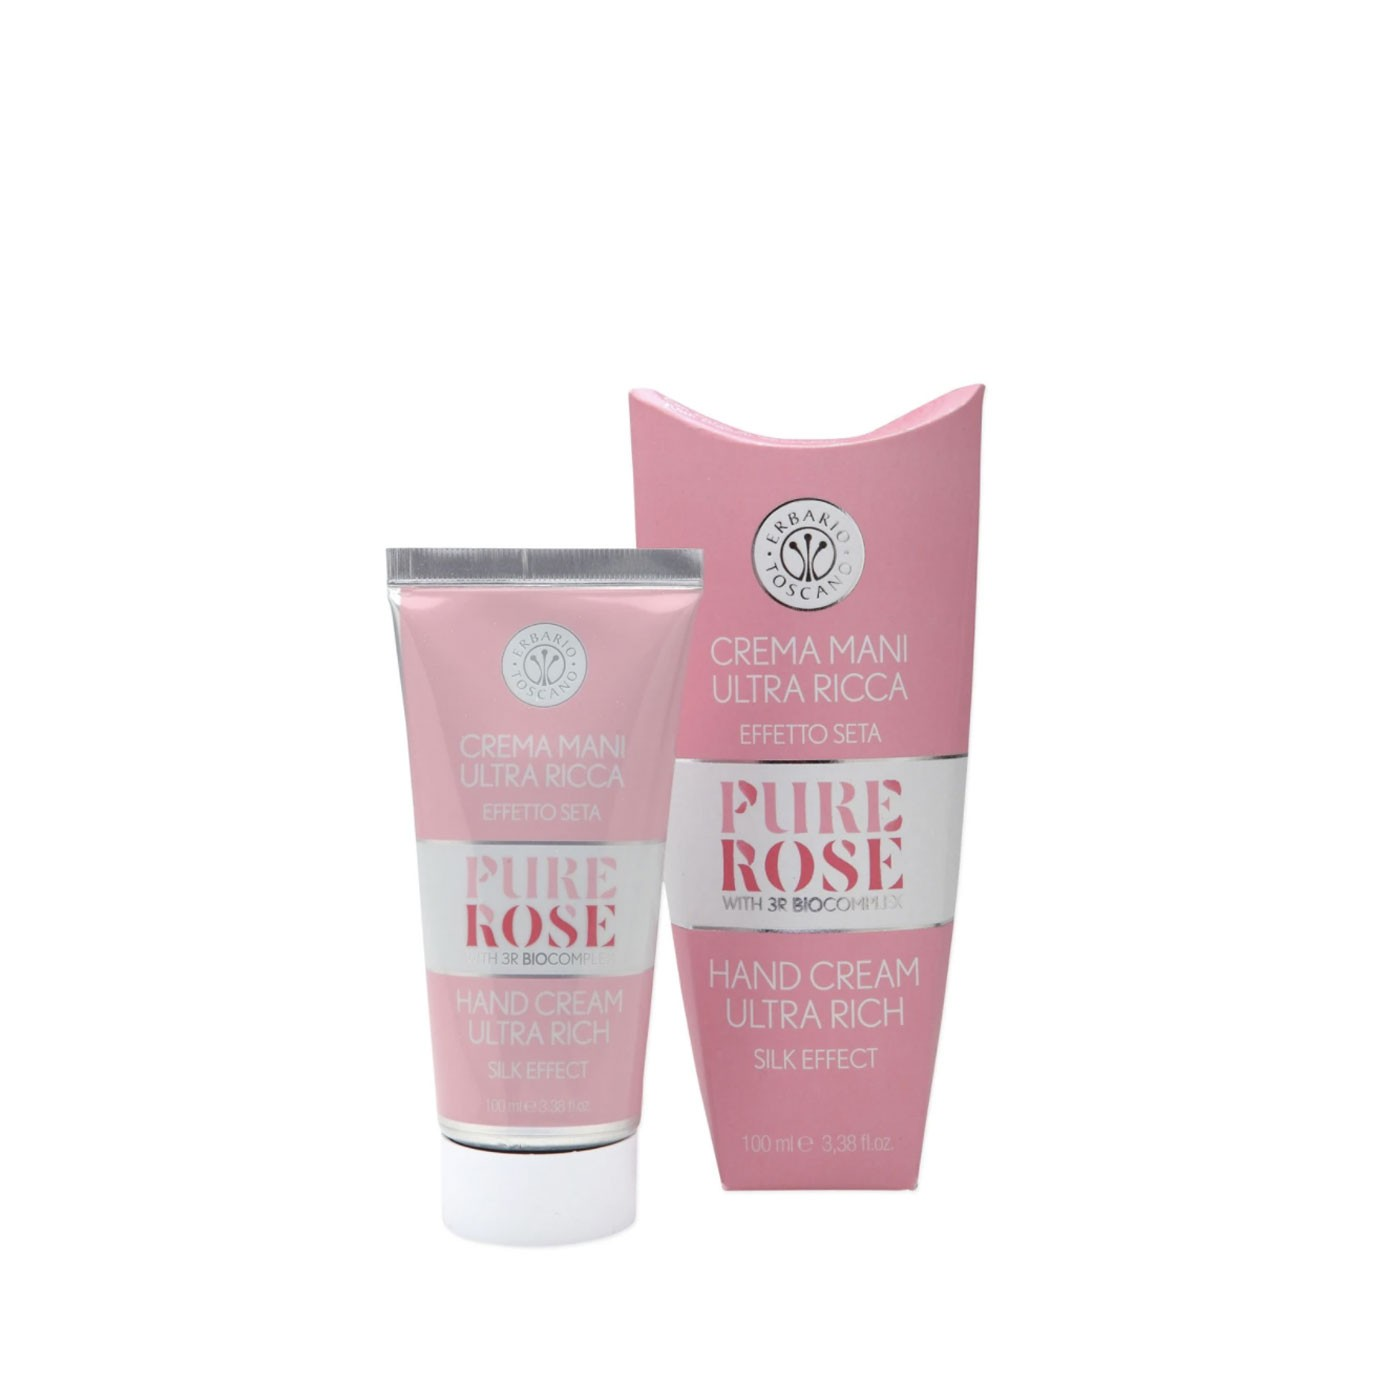 Pure Rose Hand Cream 3.4 oz